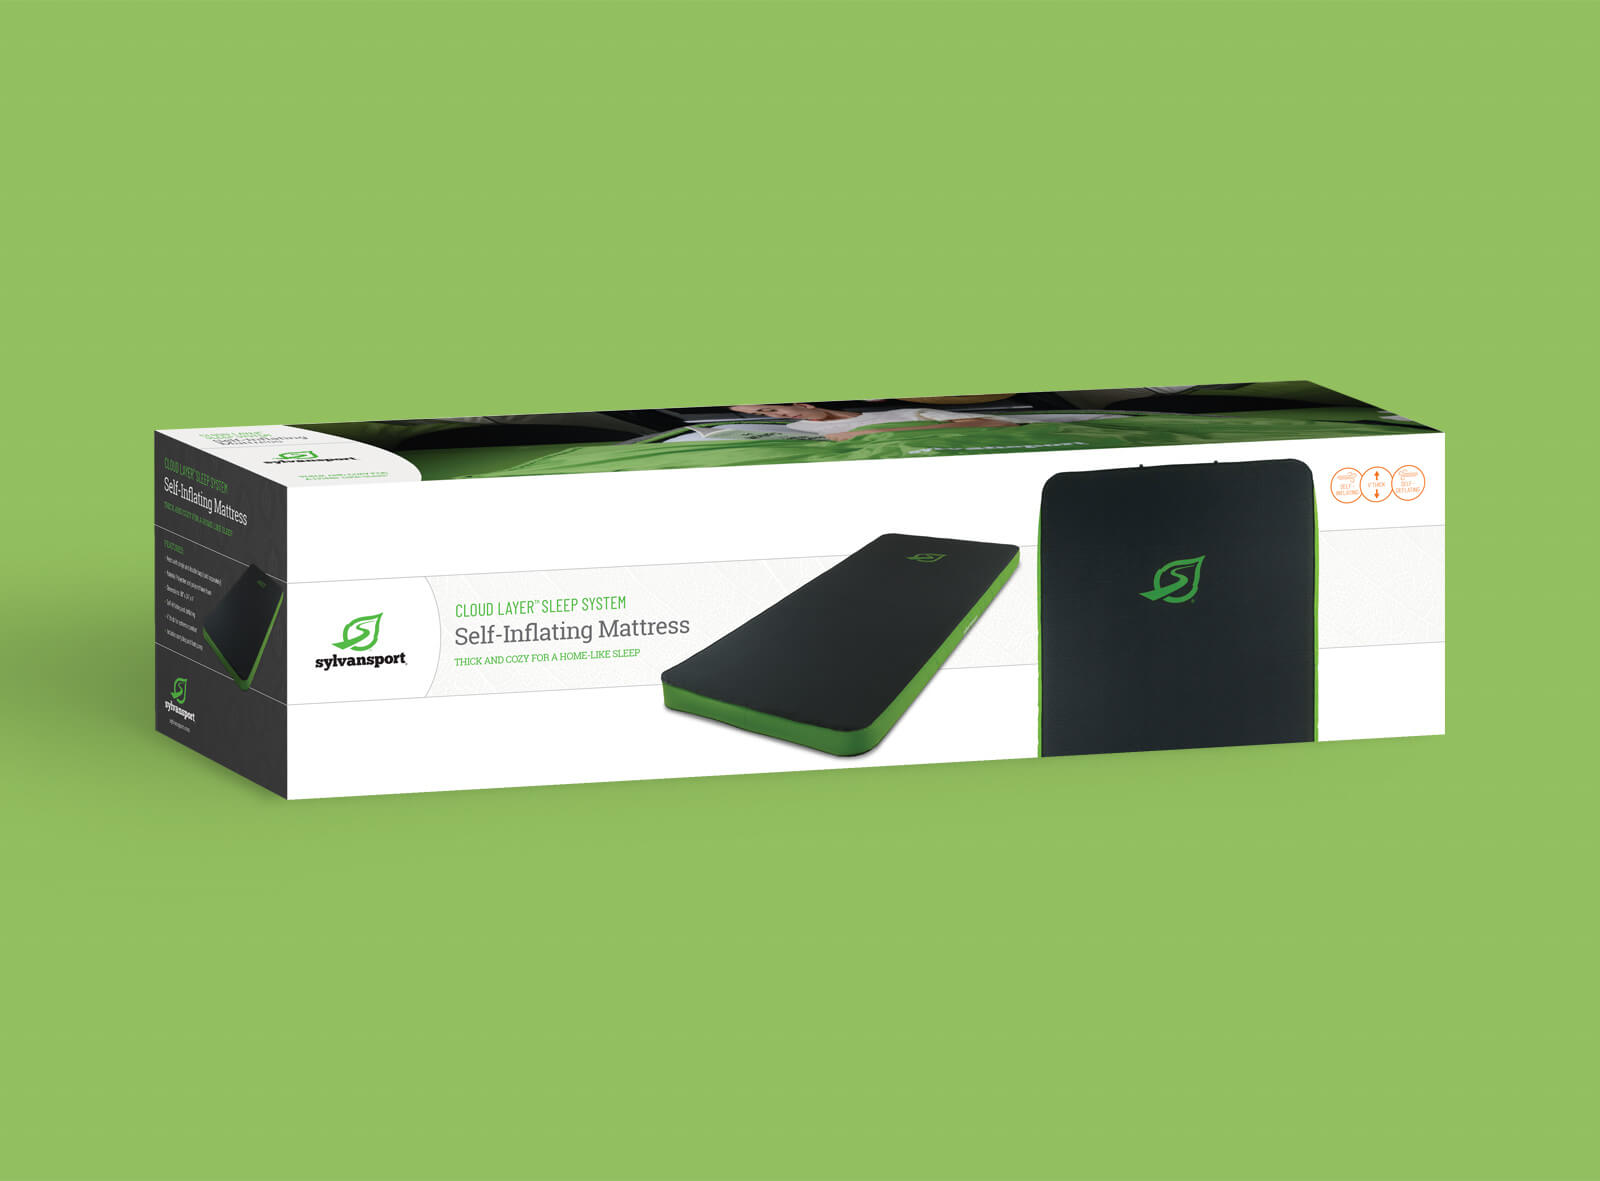 Sylvan Sport packaging box for Self-inflating Mattress against green background shows features and technical drawing of the product.